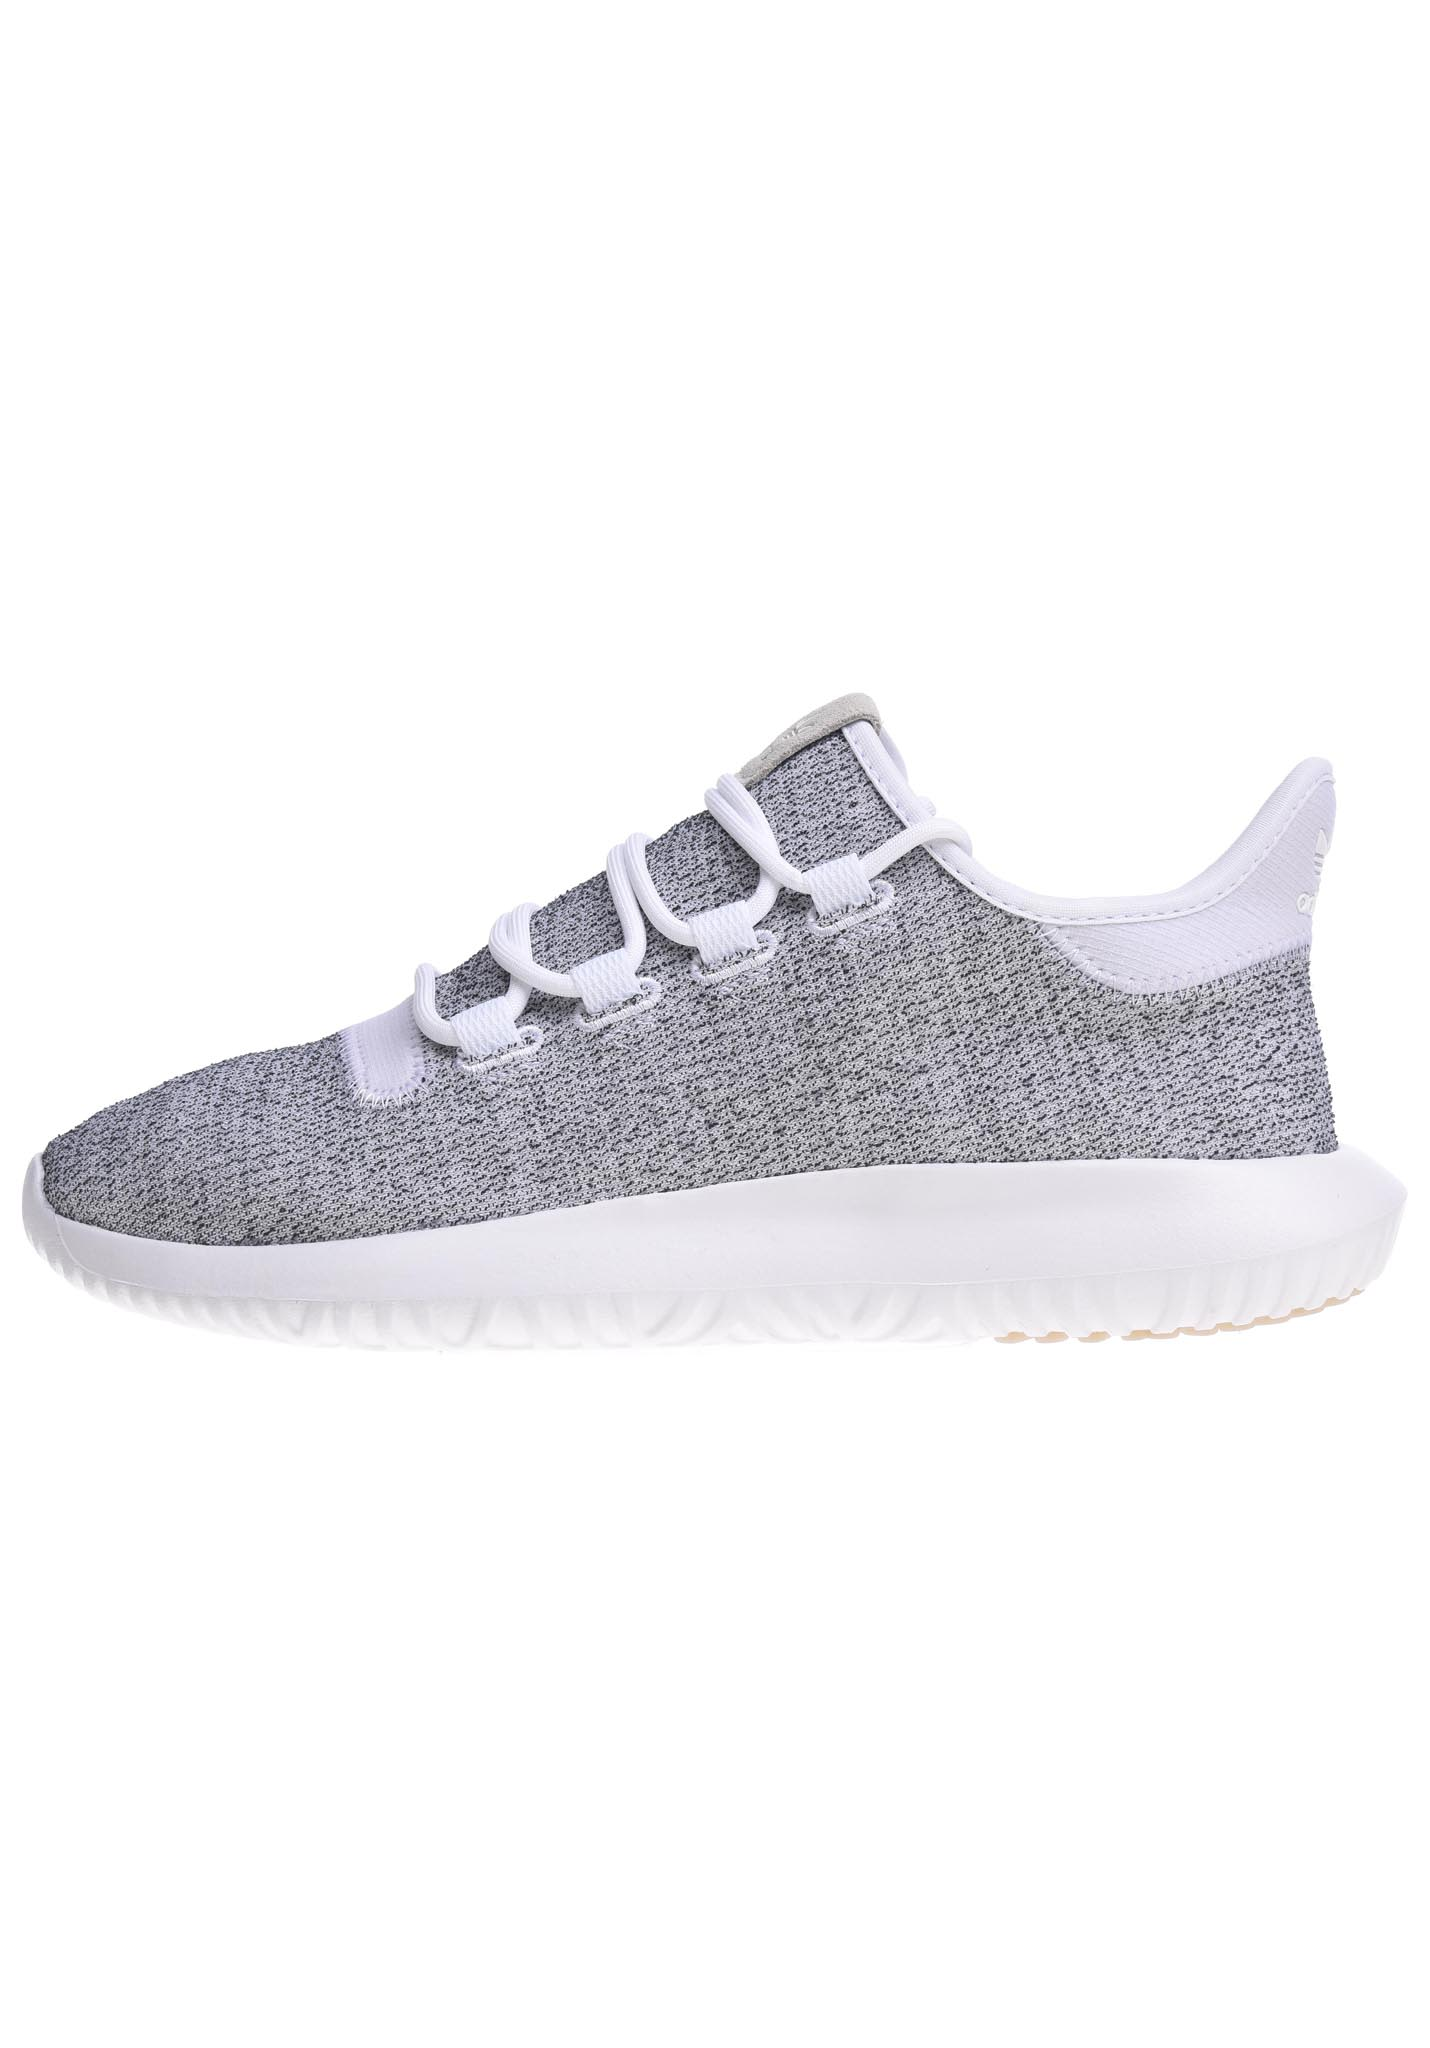 4a852327bd4106 adidas Originals Tubular Shadow - Sneaker für Herren - Grau - Planet Sports